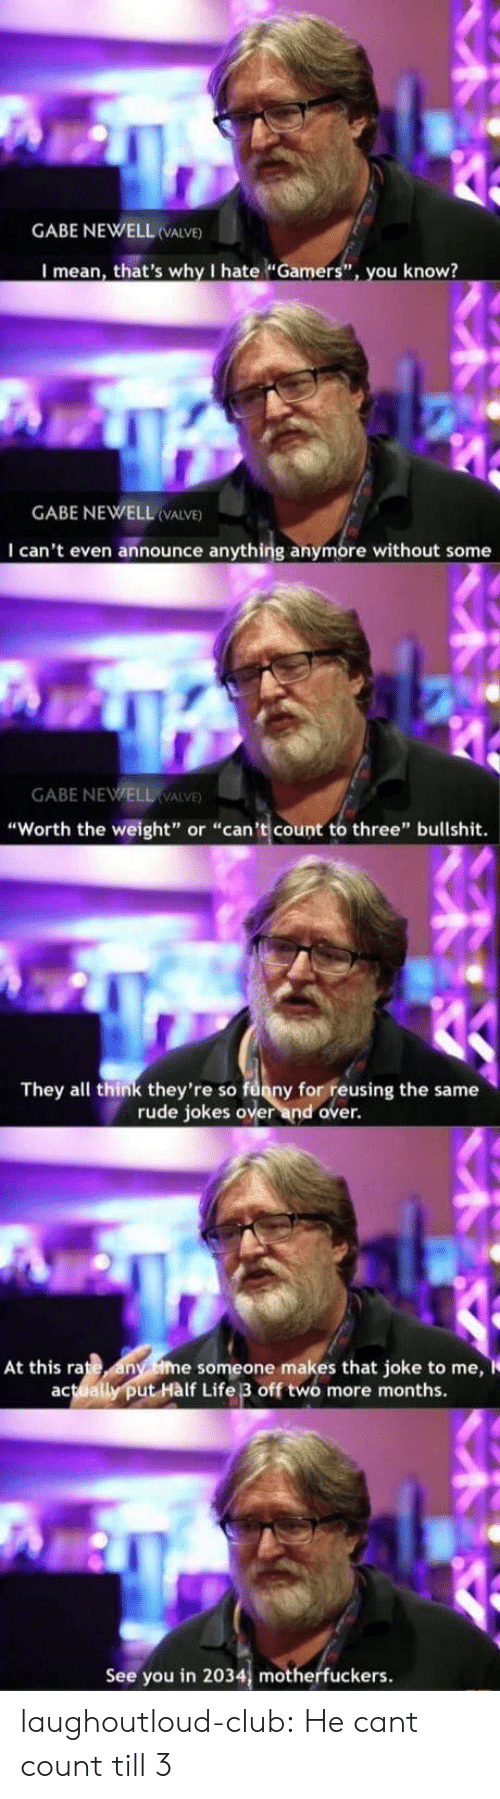 """i cant even: GABE NEWELL VALVE)  I mean, that's why I hate """"Gamers"""", you know?  GABE NEWELL (VALVE)  I can't even announce anything anymore without some  GABE NEWELL VALVE  """"Worth the weight"""" or """"can't count to three"""" bullshit.  They all think they're so funny for reusing the same  rude jokes over and over.  At this rate any ime someone makes that joke to me,  actually put Hàlf Life 3 off two more months.  See you in 2034, motherfuckers. laughoutloud-club:  He cant count till 3"""